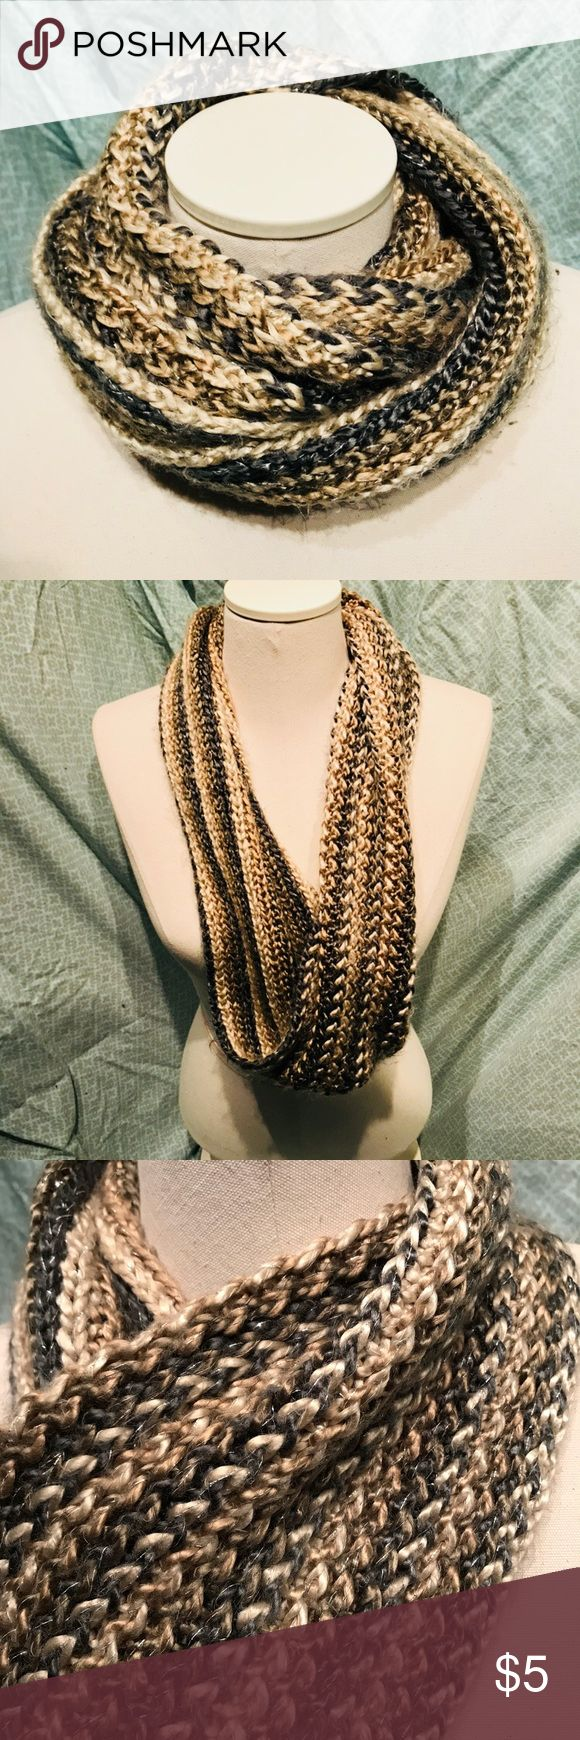 ⛄️Infinity scarf 🧣 Braided metallic scarf. Stripes in beige, brown, and grey with silver strands Coldwater Creek Accessories Scarves & Wraps